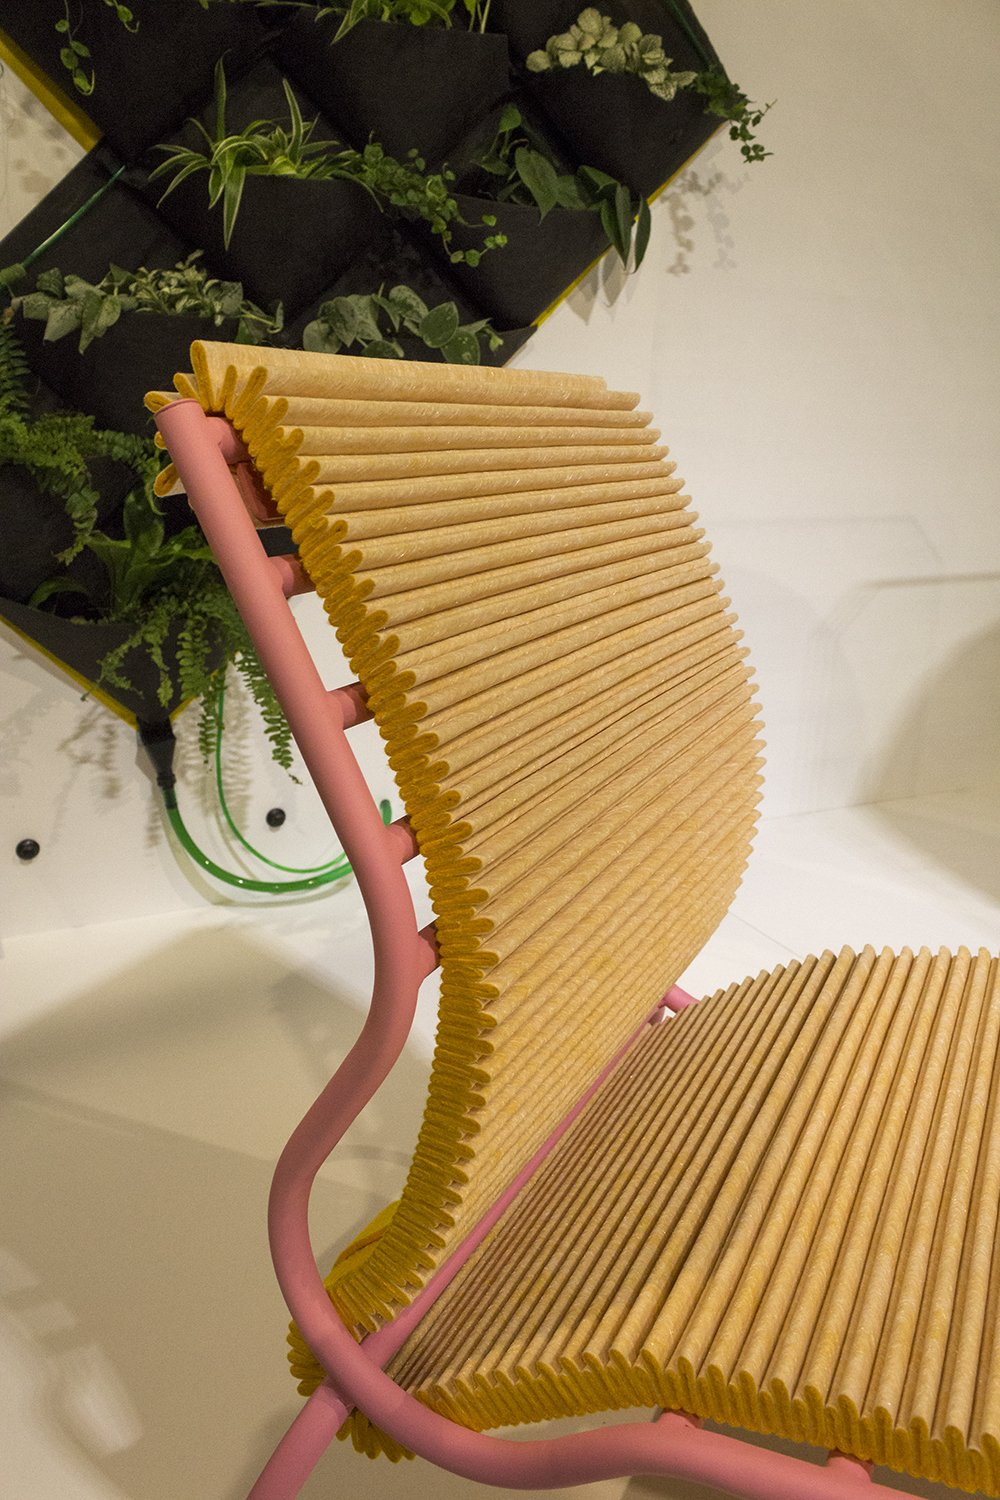 Joris de Groot Pleated Seat at Object Rotterdam /// More on Interiorator.com